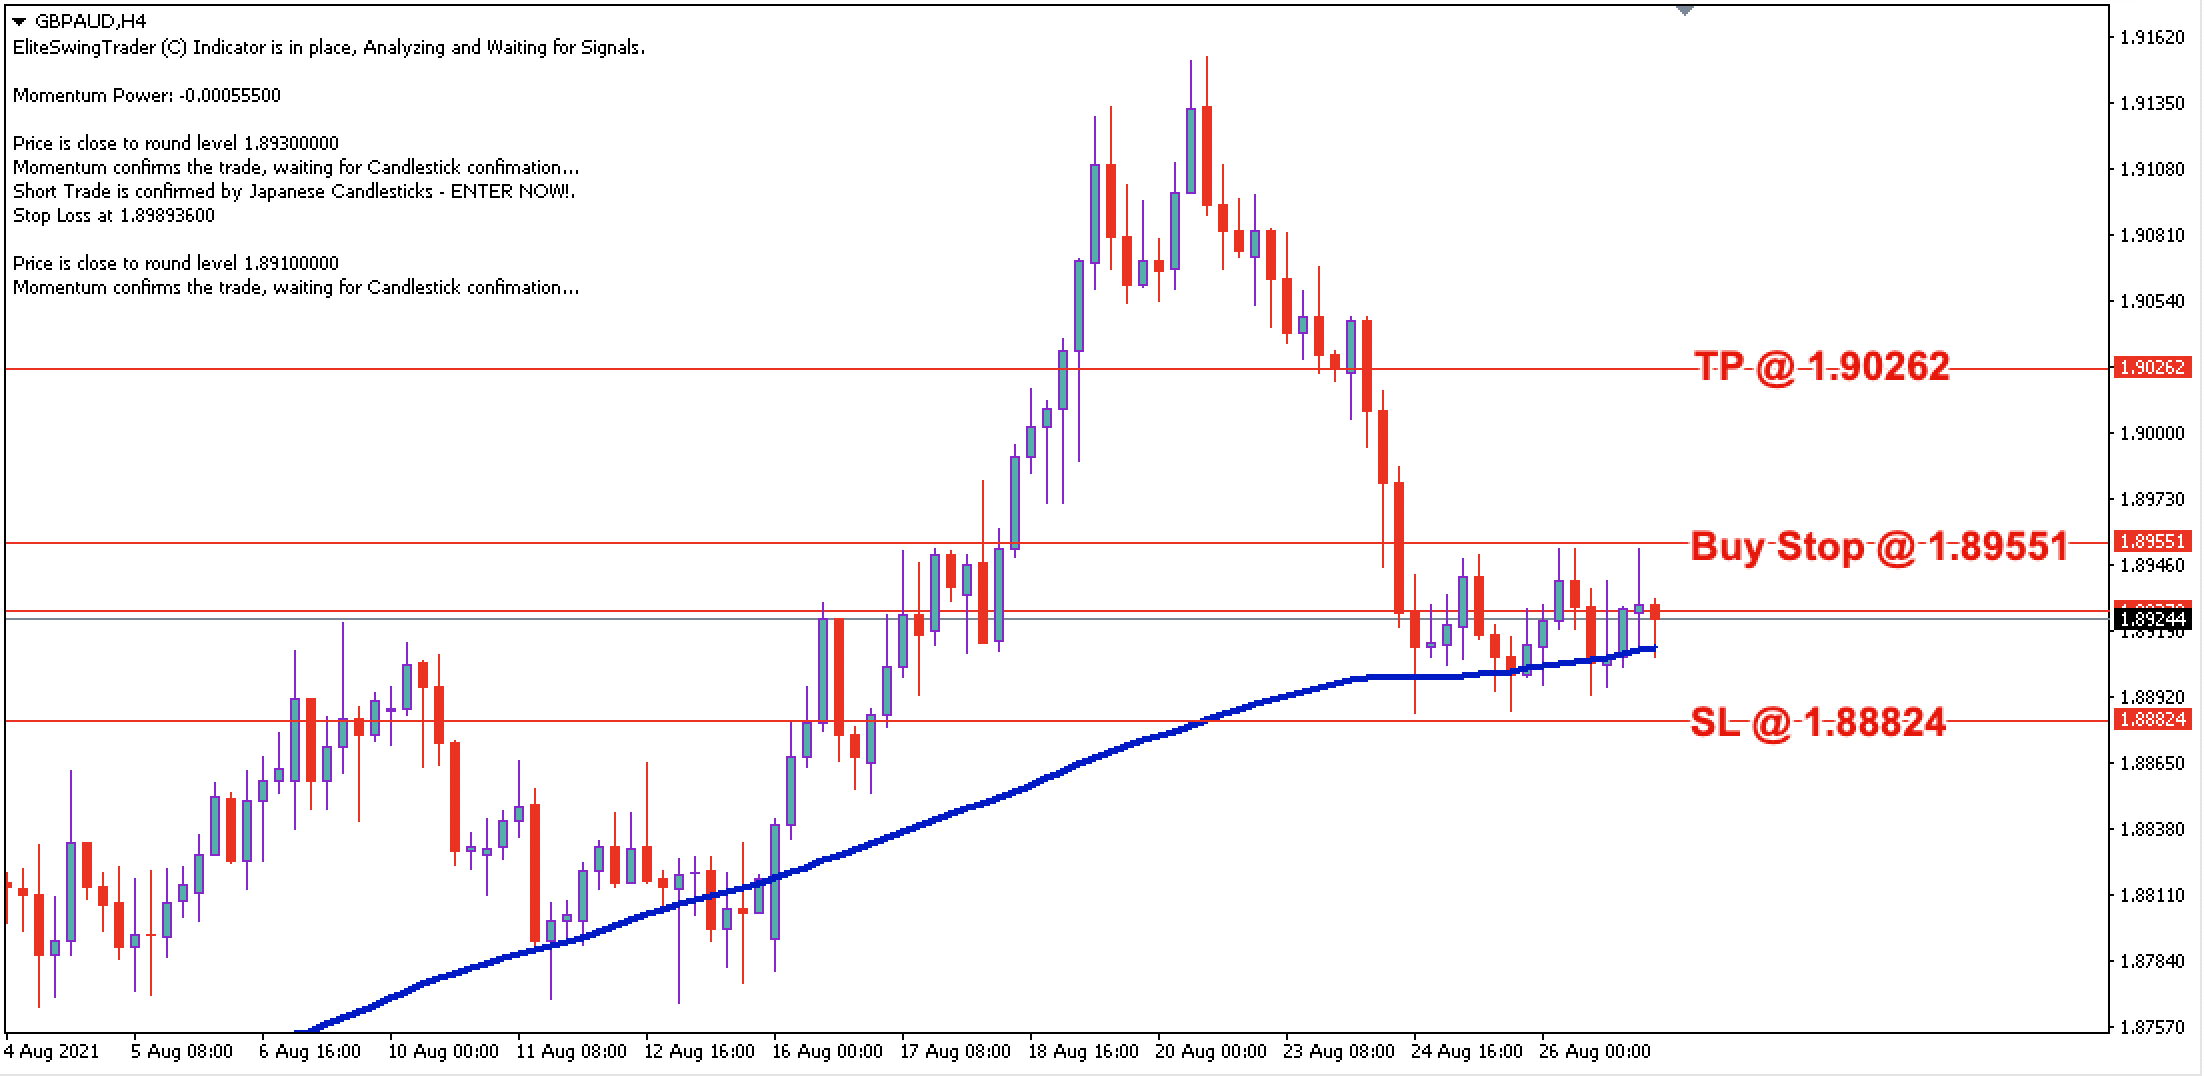 GBP/AUD Daily Price Forecast – 27th August 2021